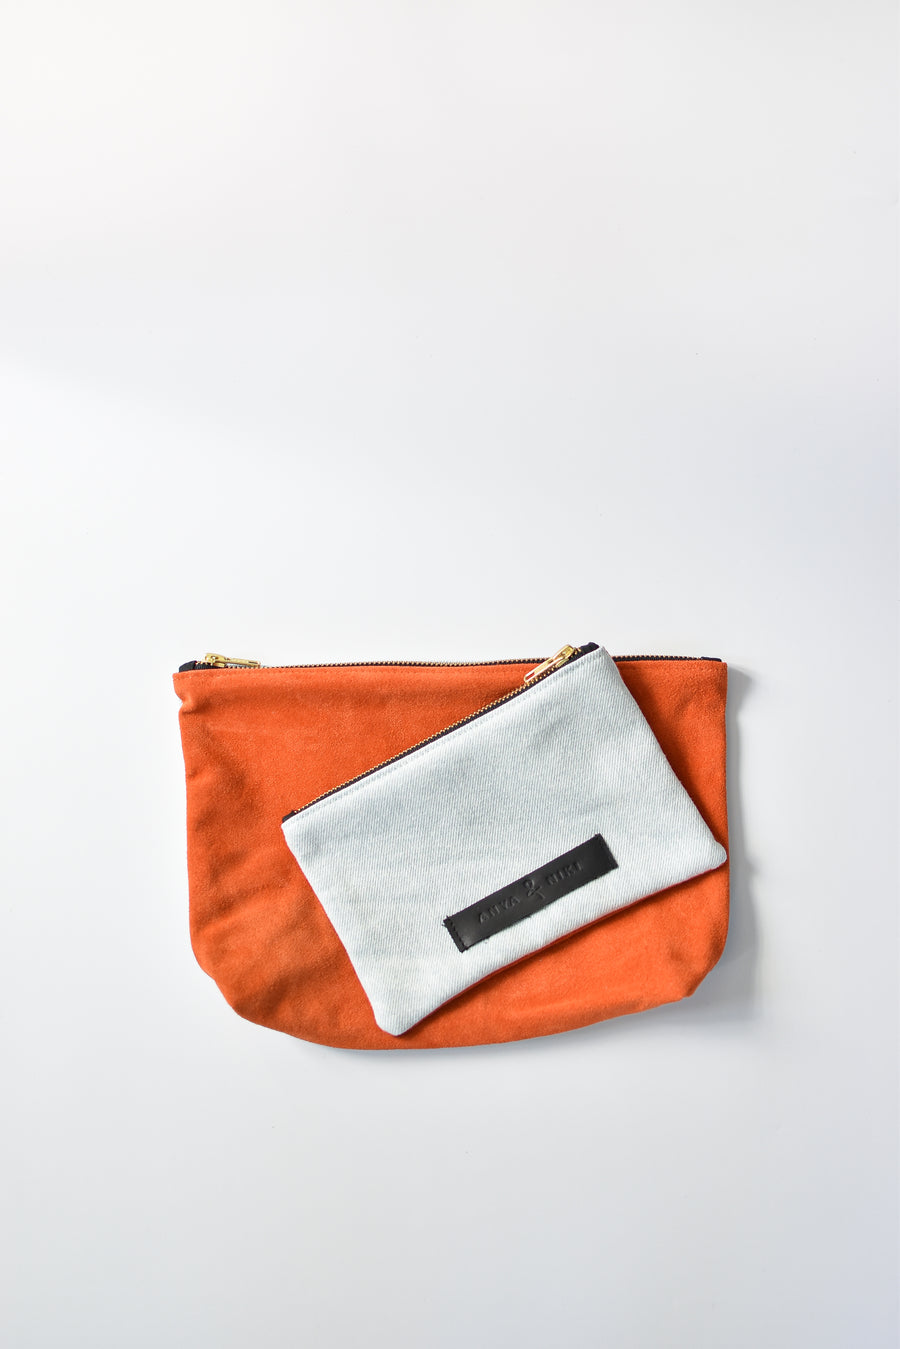 Washed denim and orange suede medium and small pouch with brass zipper and leather logo label.